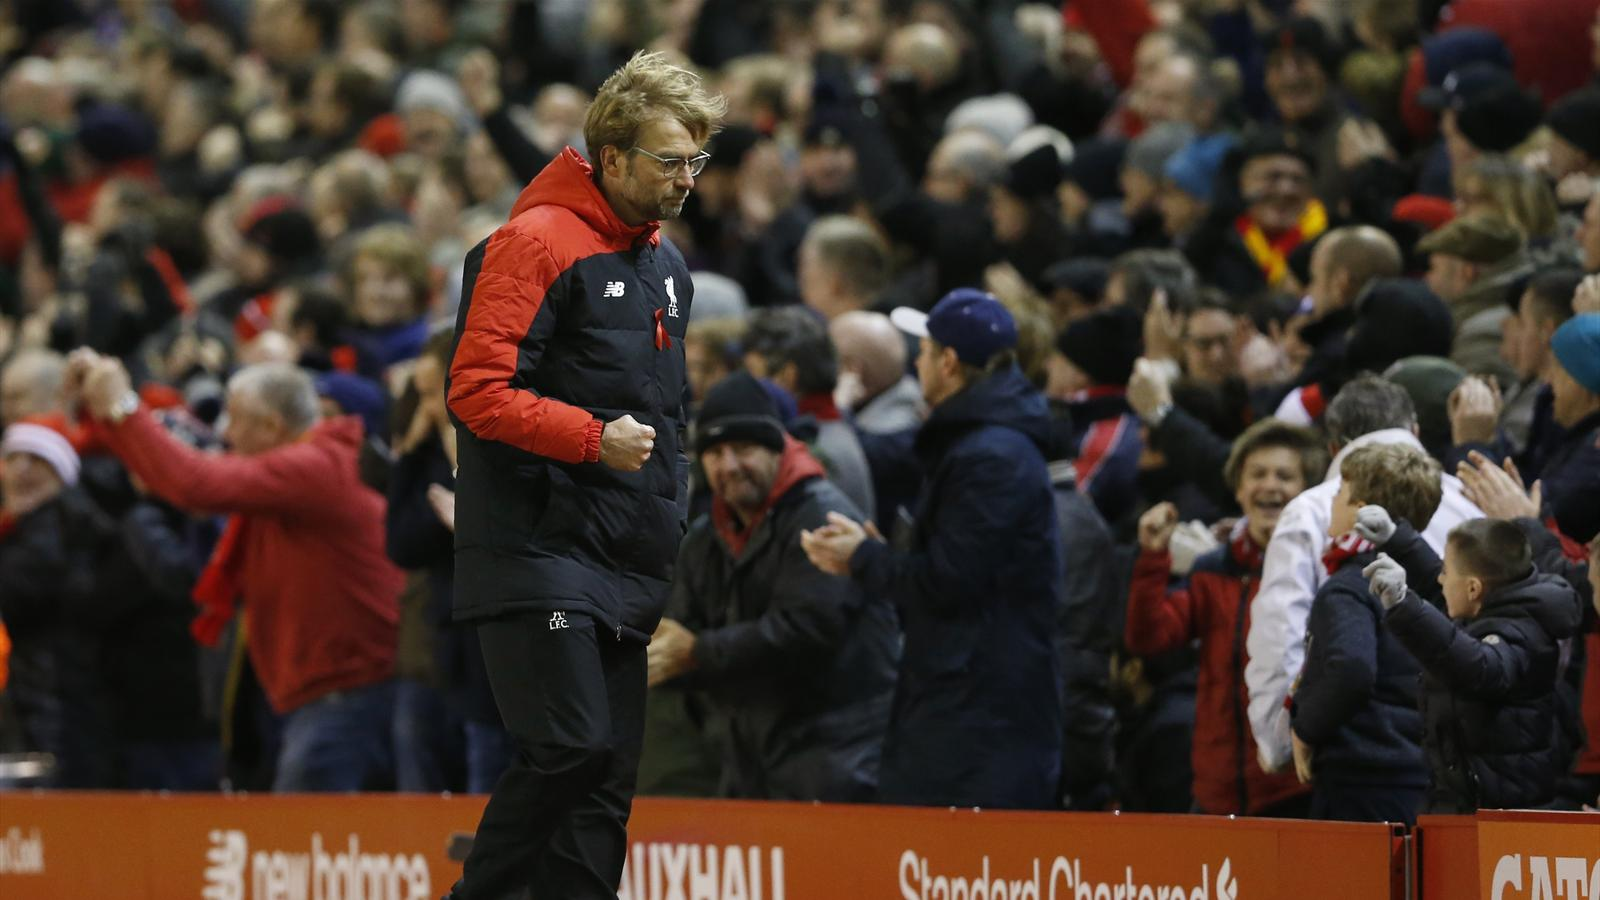 Liverpool manager Jurgen Klopp reacts as James Milner scores the first goal for Liverpool from the penalty spot